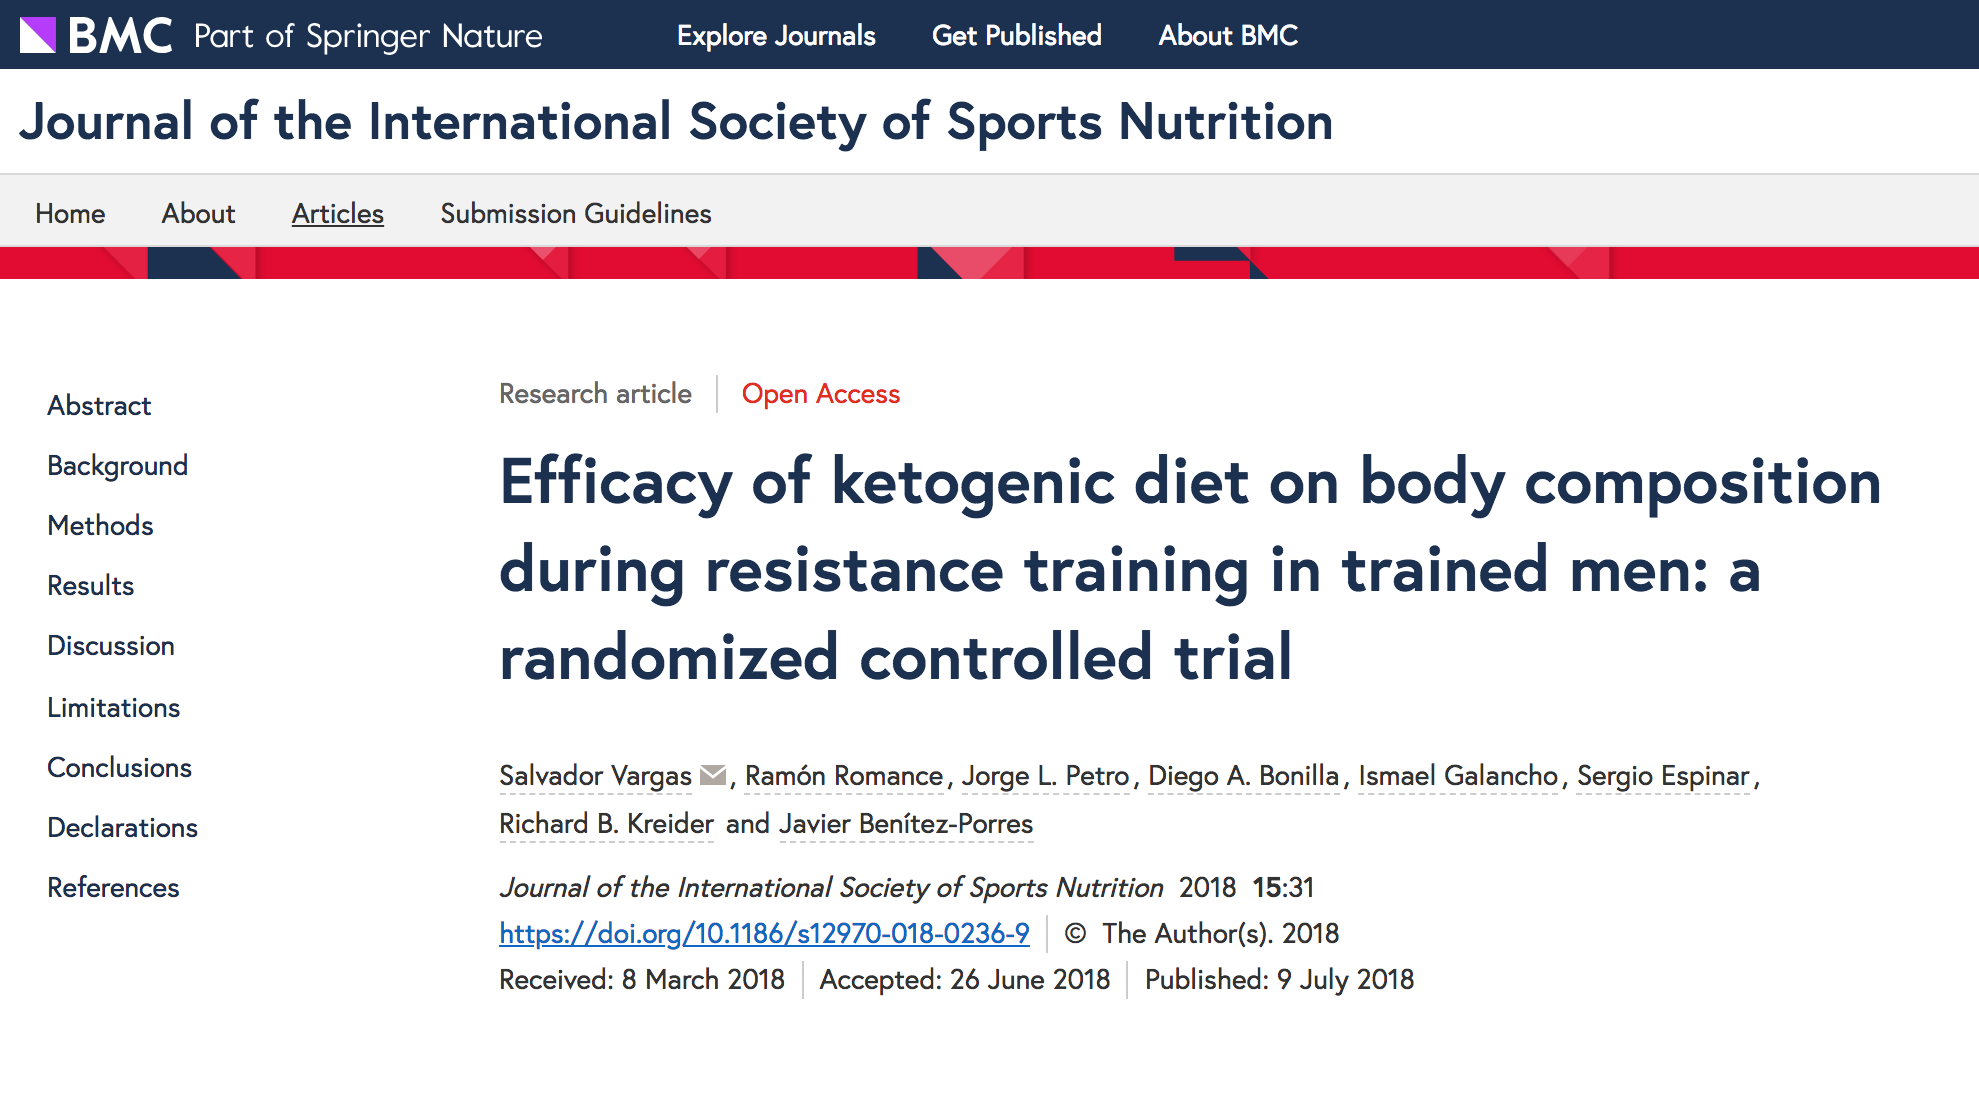 Title and description of the keto diet study discussed in this article